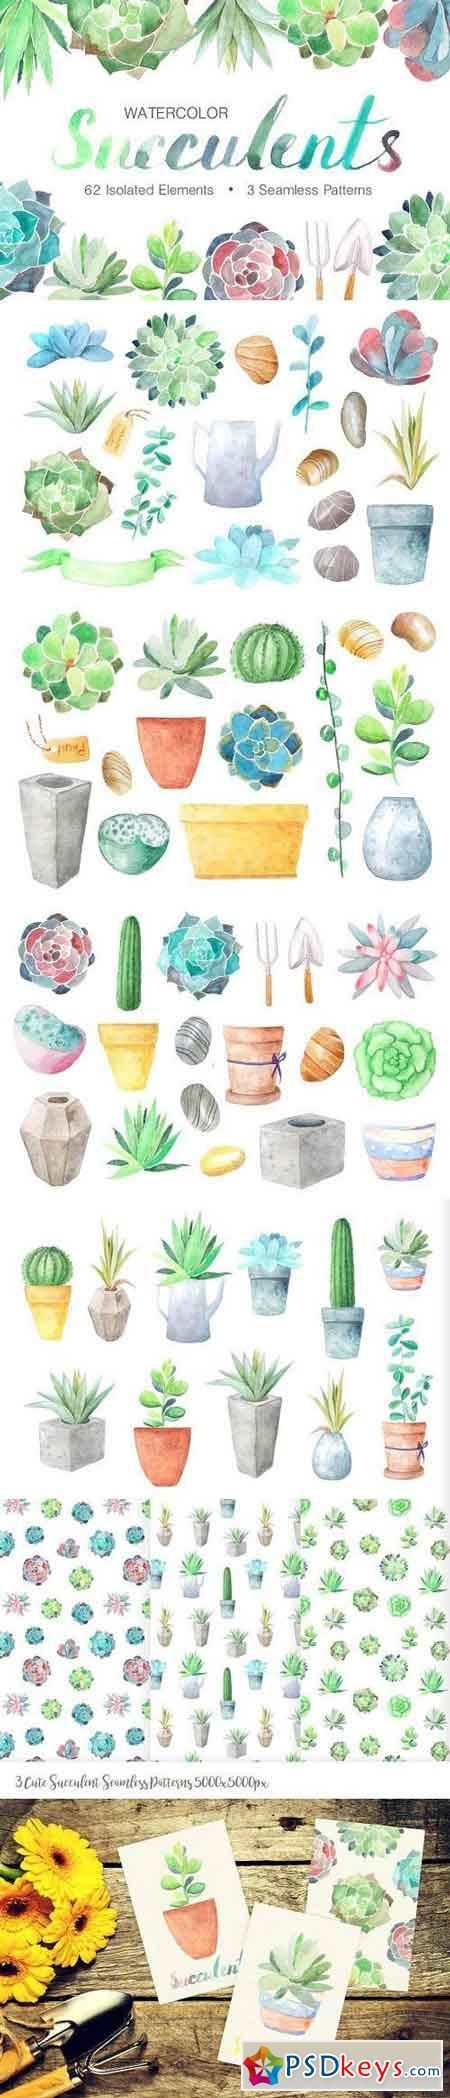 Watercolor Succulents Collection 1254088